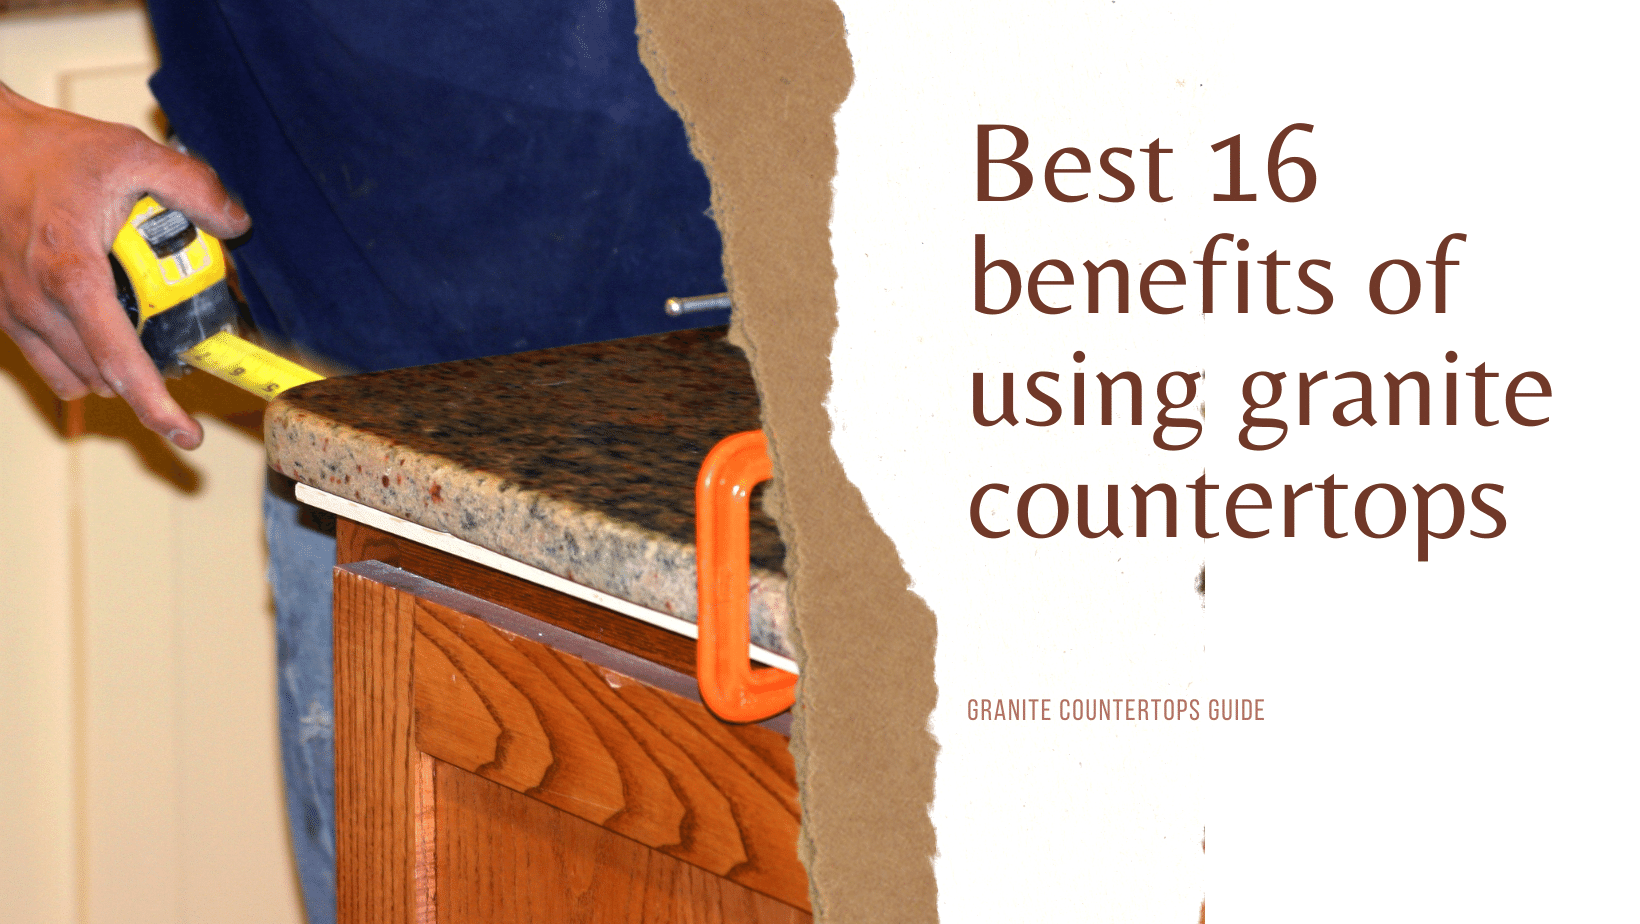 Best 16 benefits of using granite countertops